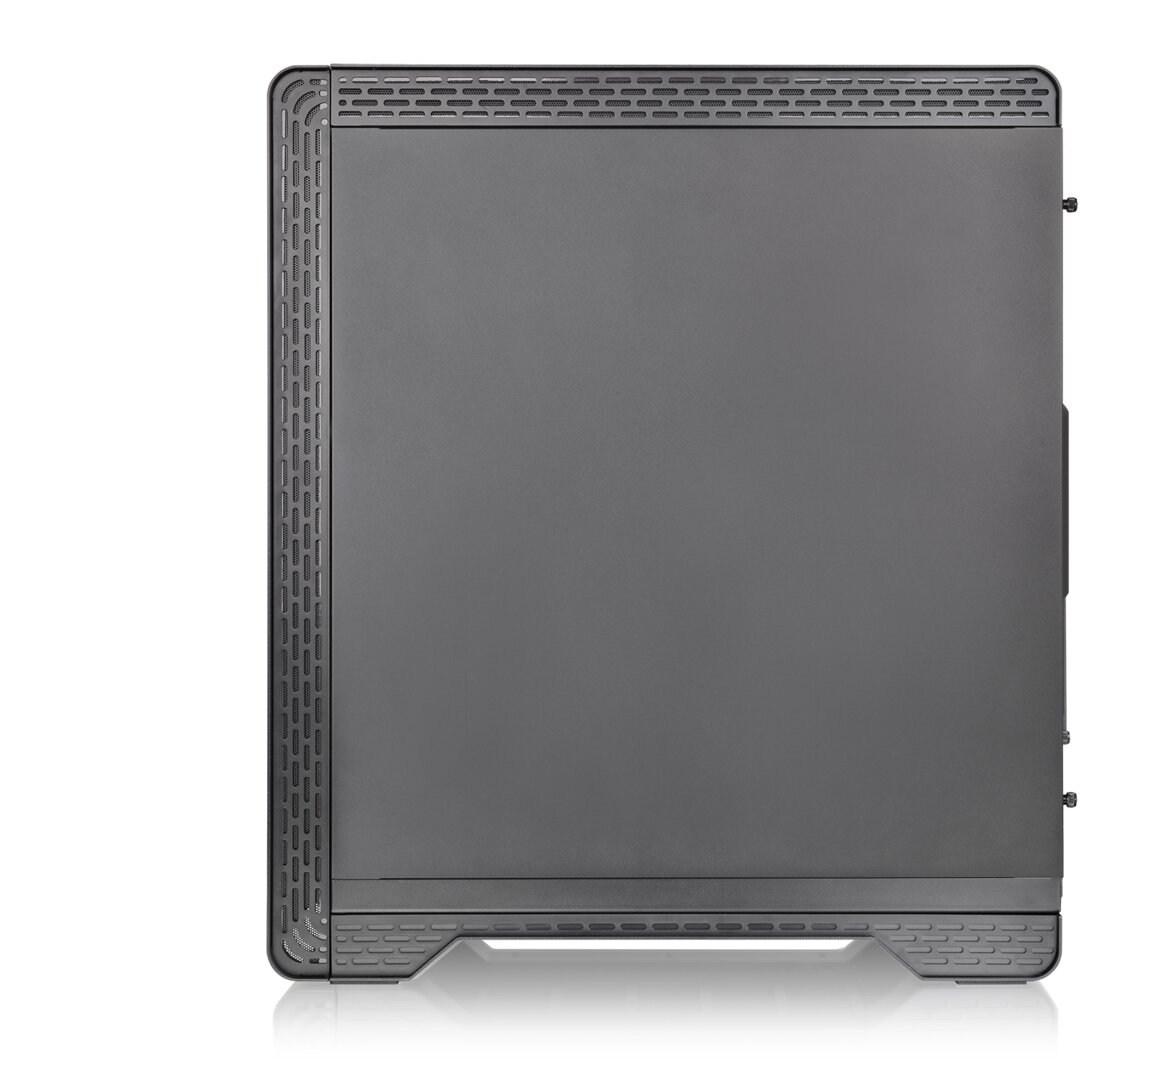 Thermaltake S500 Tempered Glass Edition